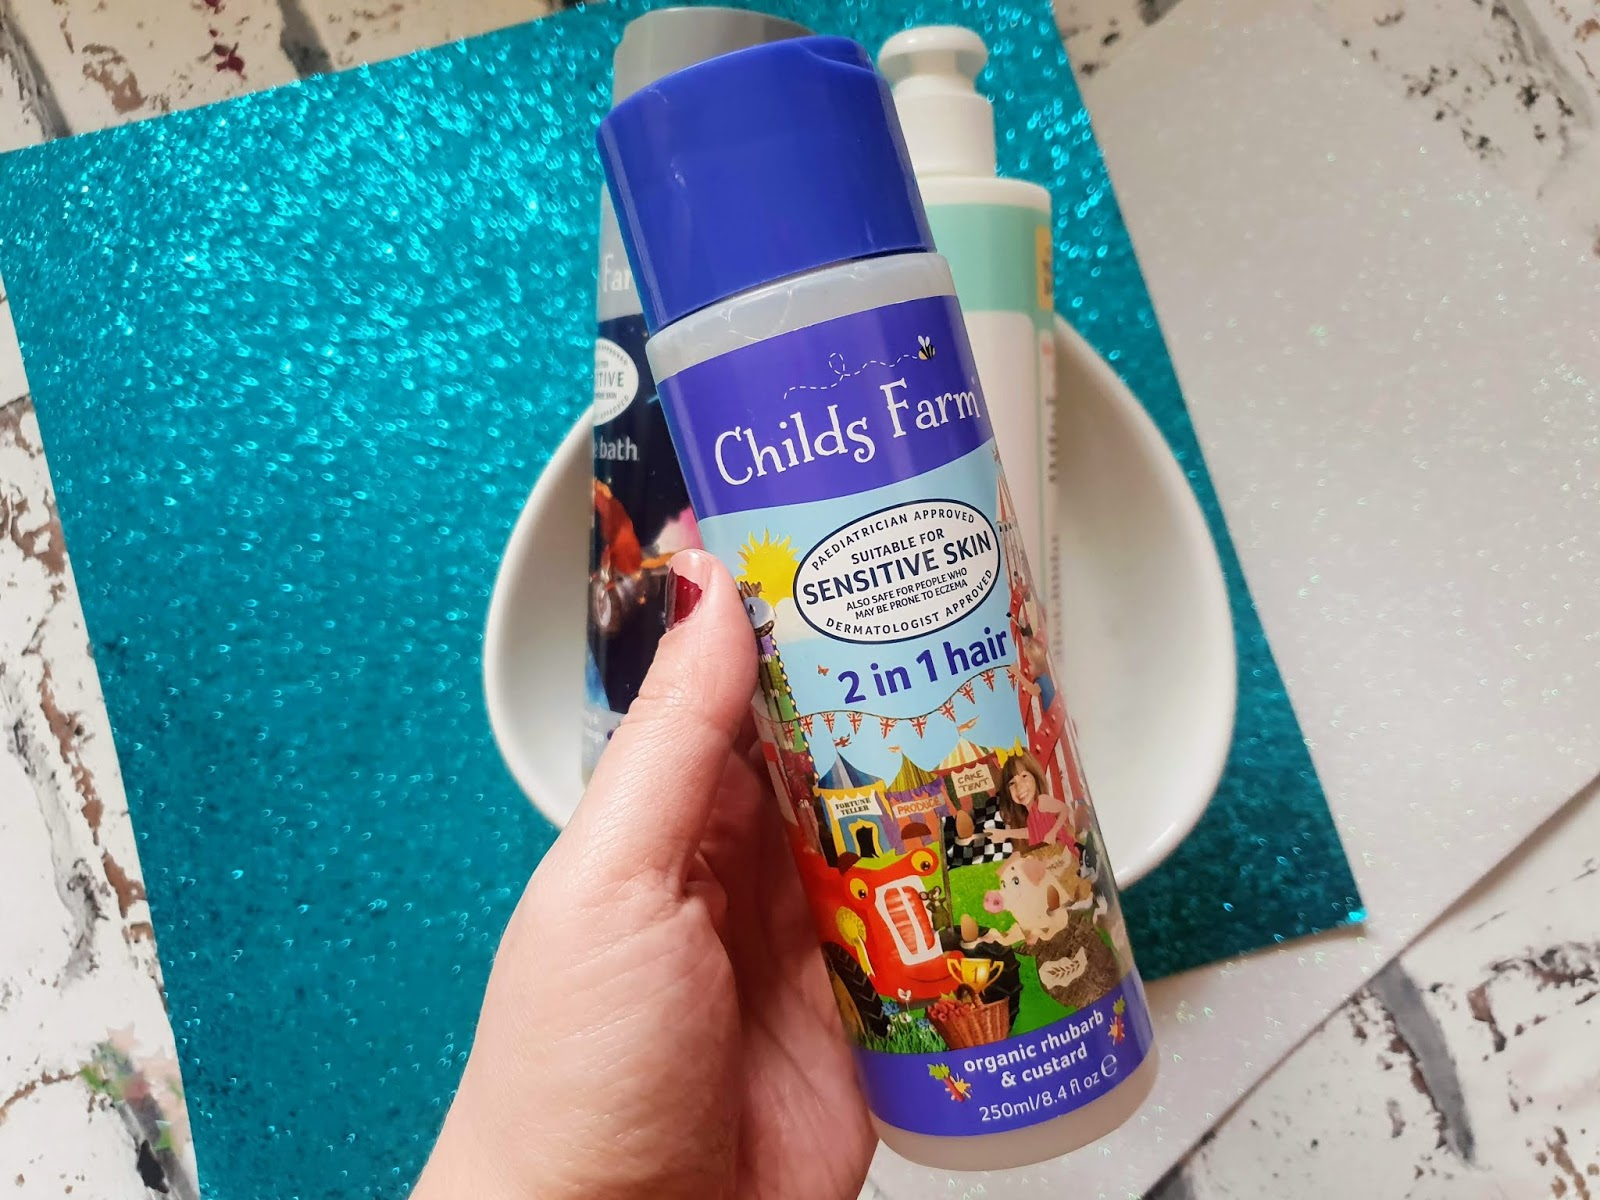 Child's Farm Products | Review